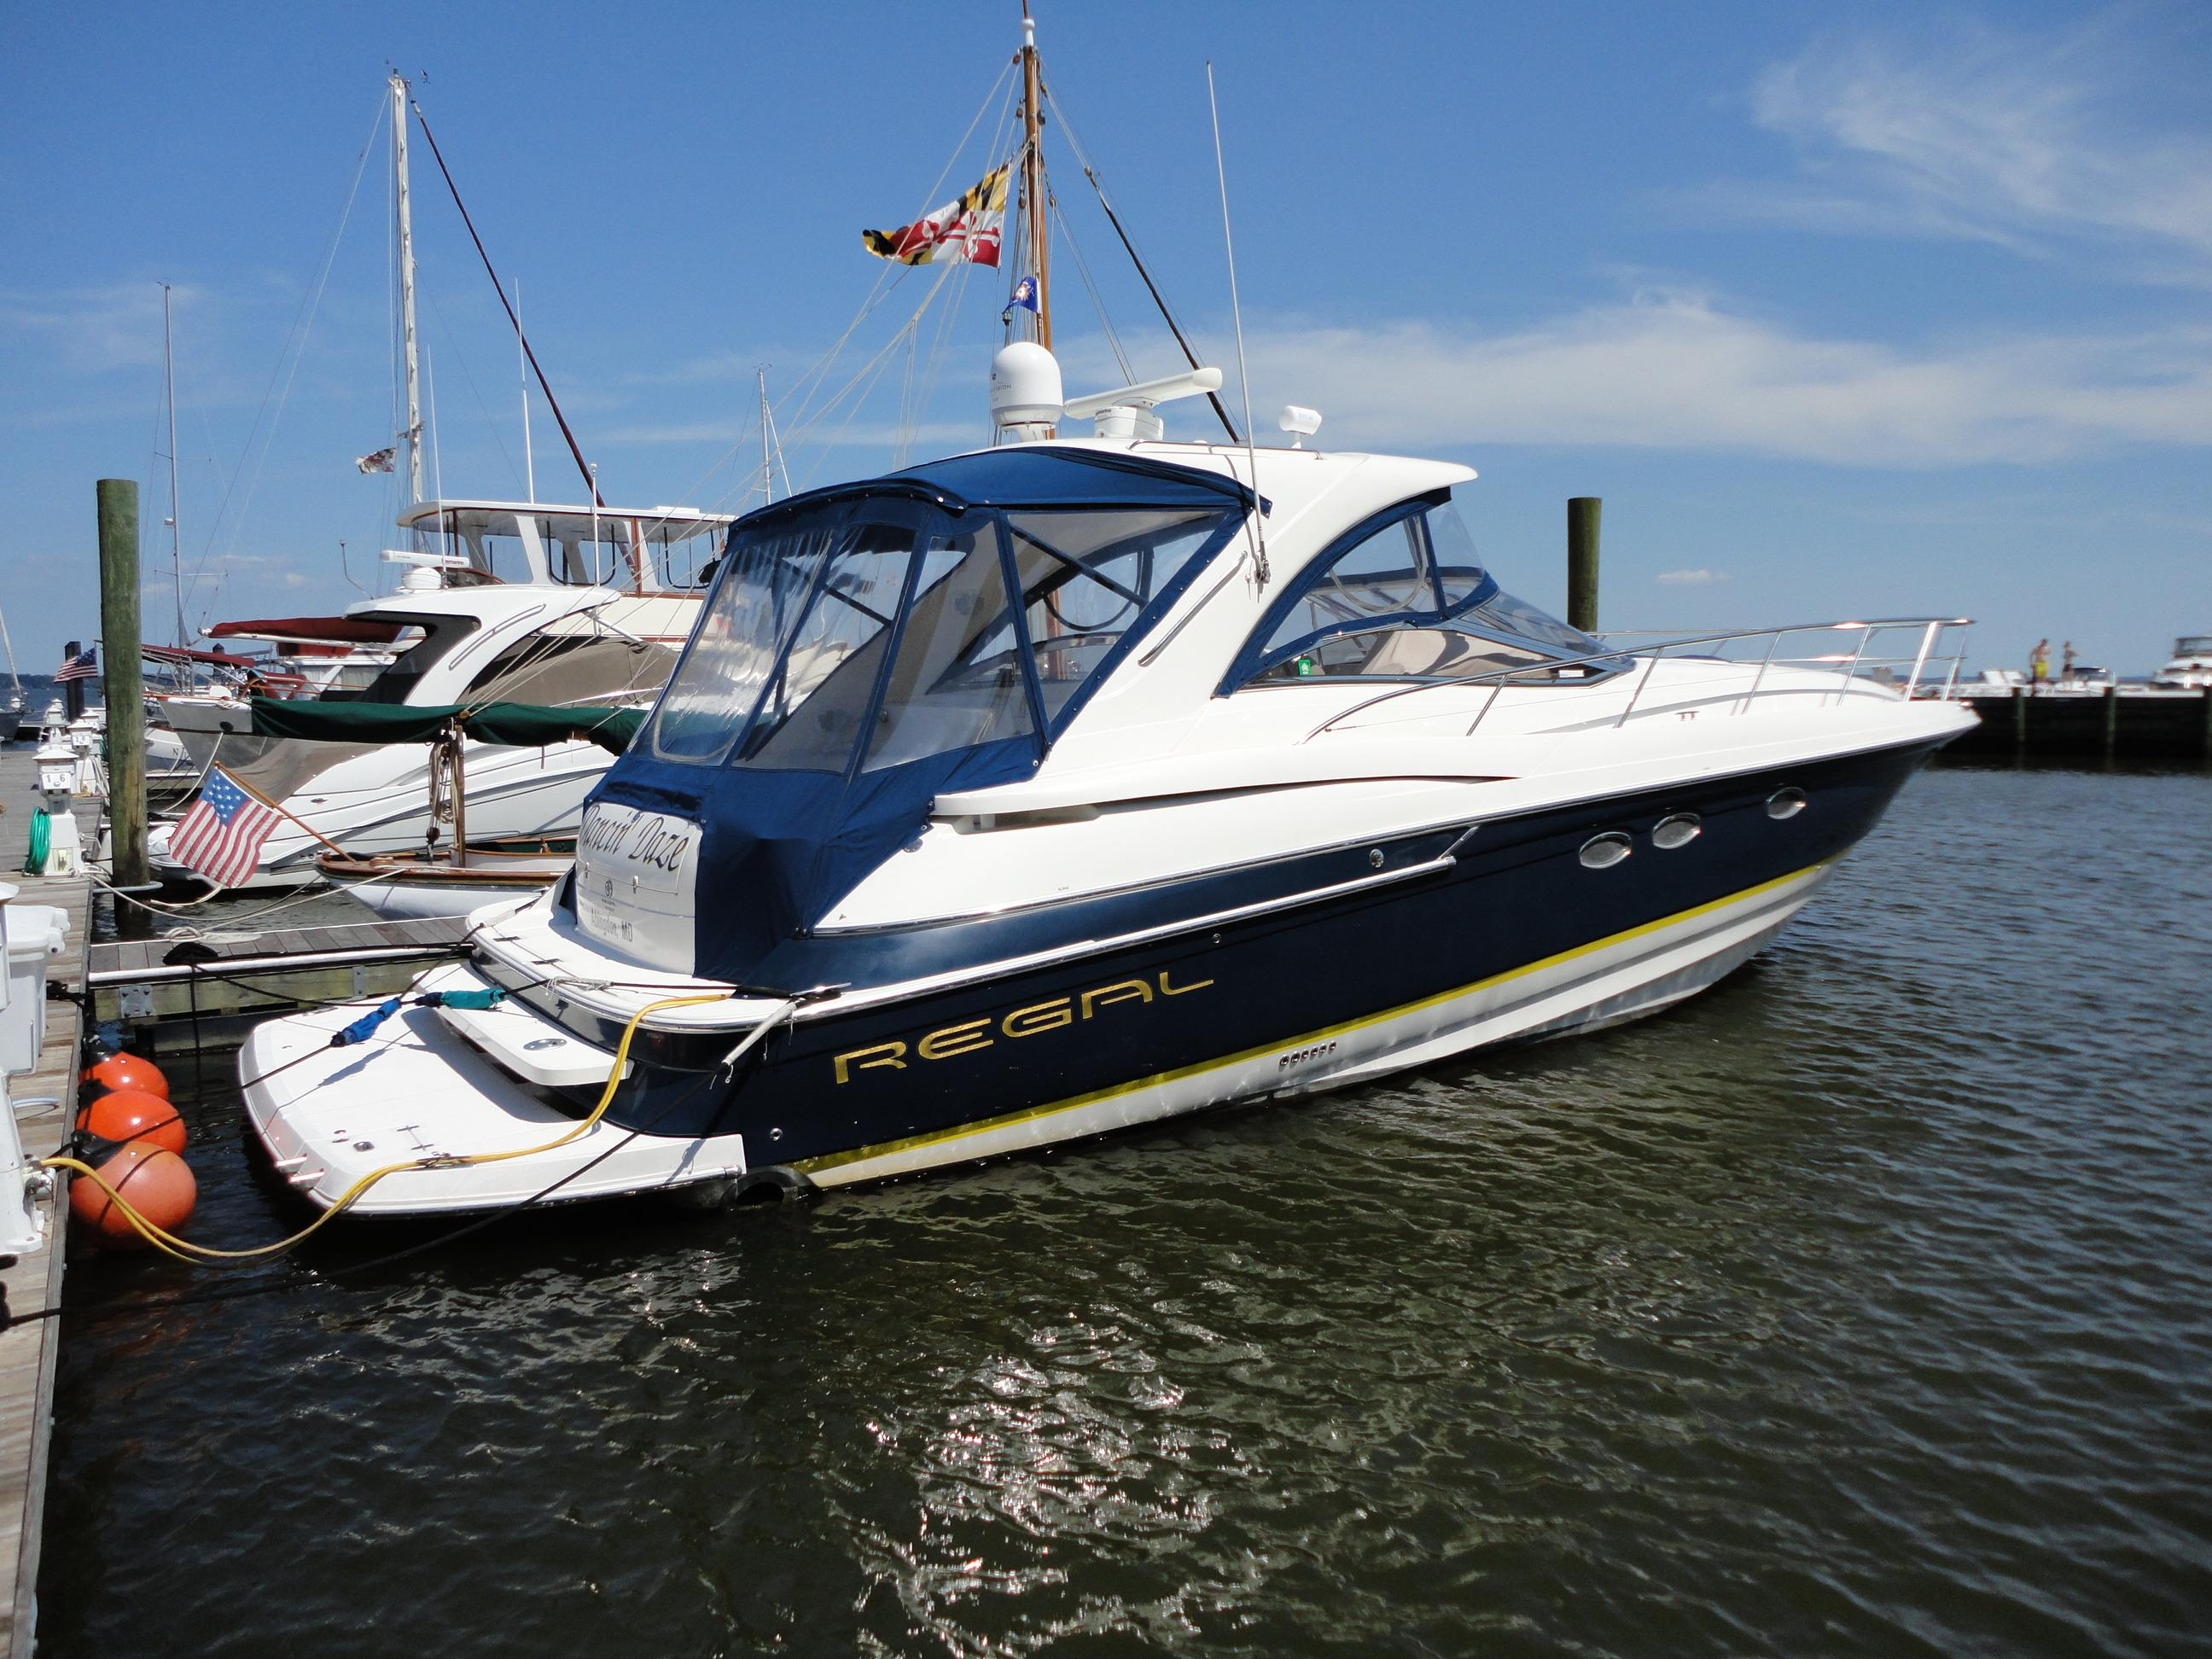 42 Foot Boats For Sale In Md Boat Listings